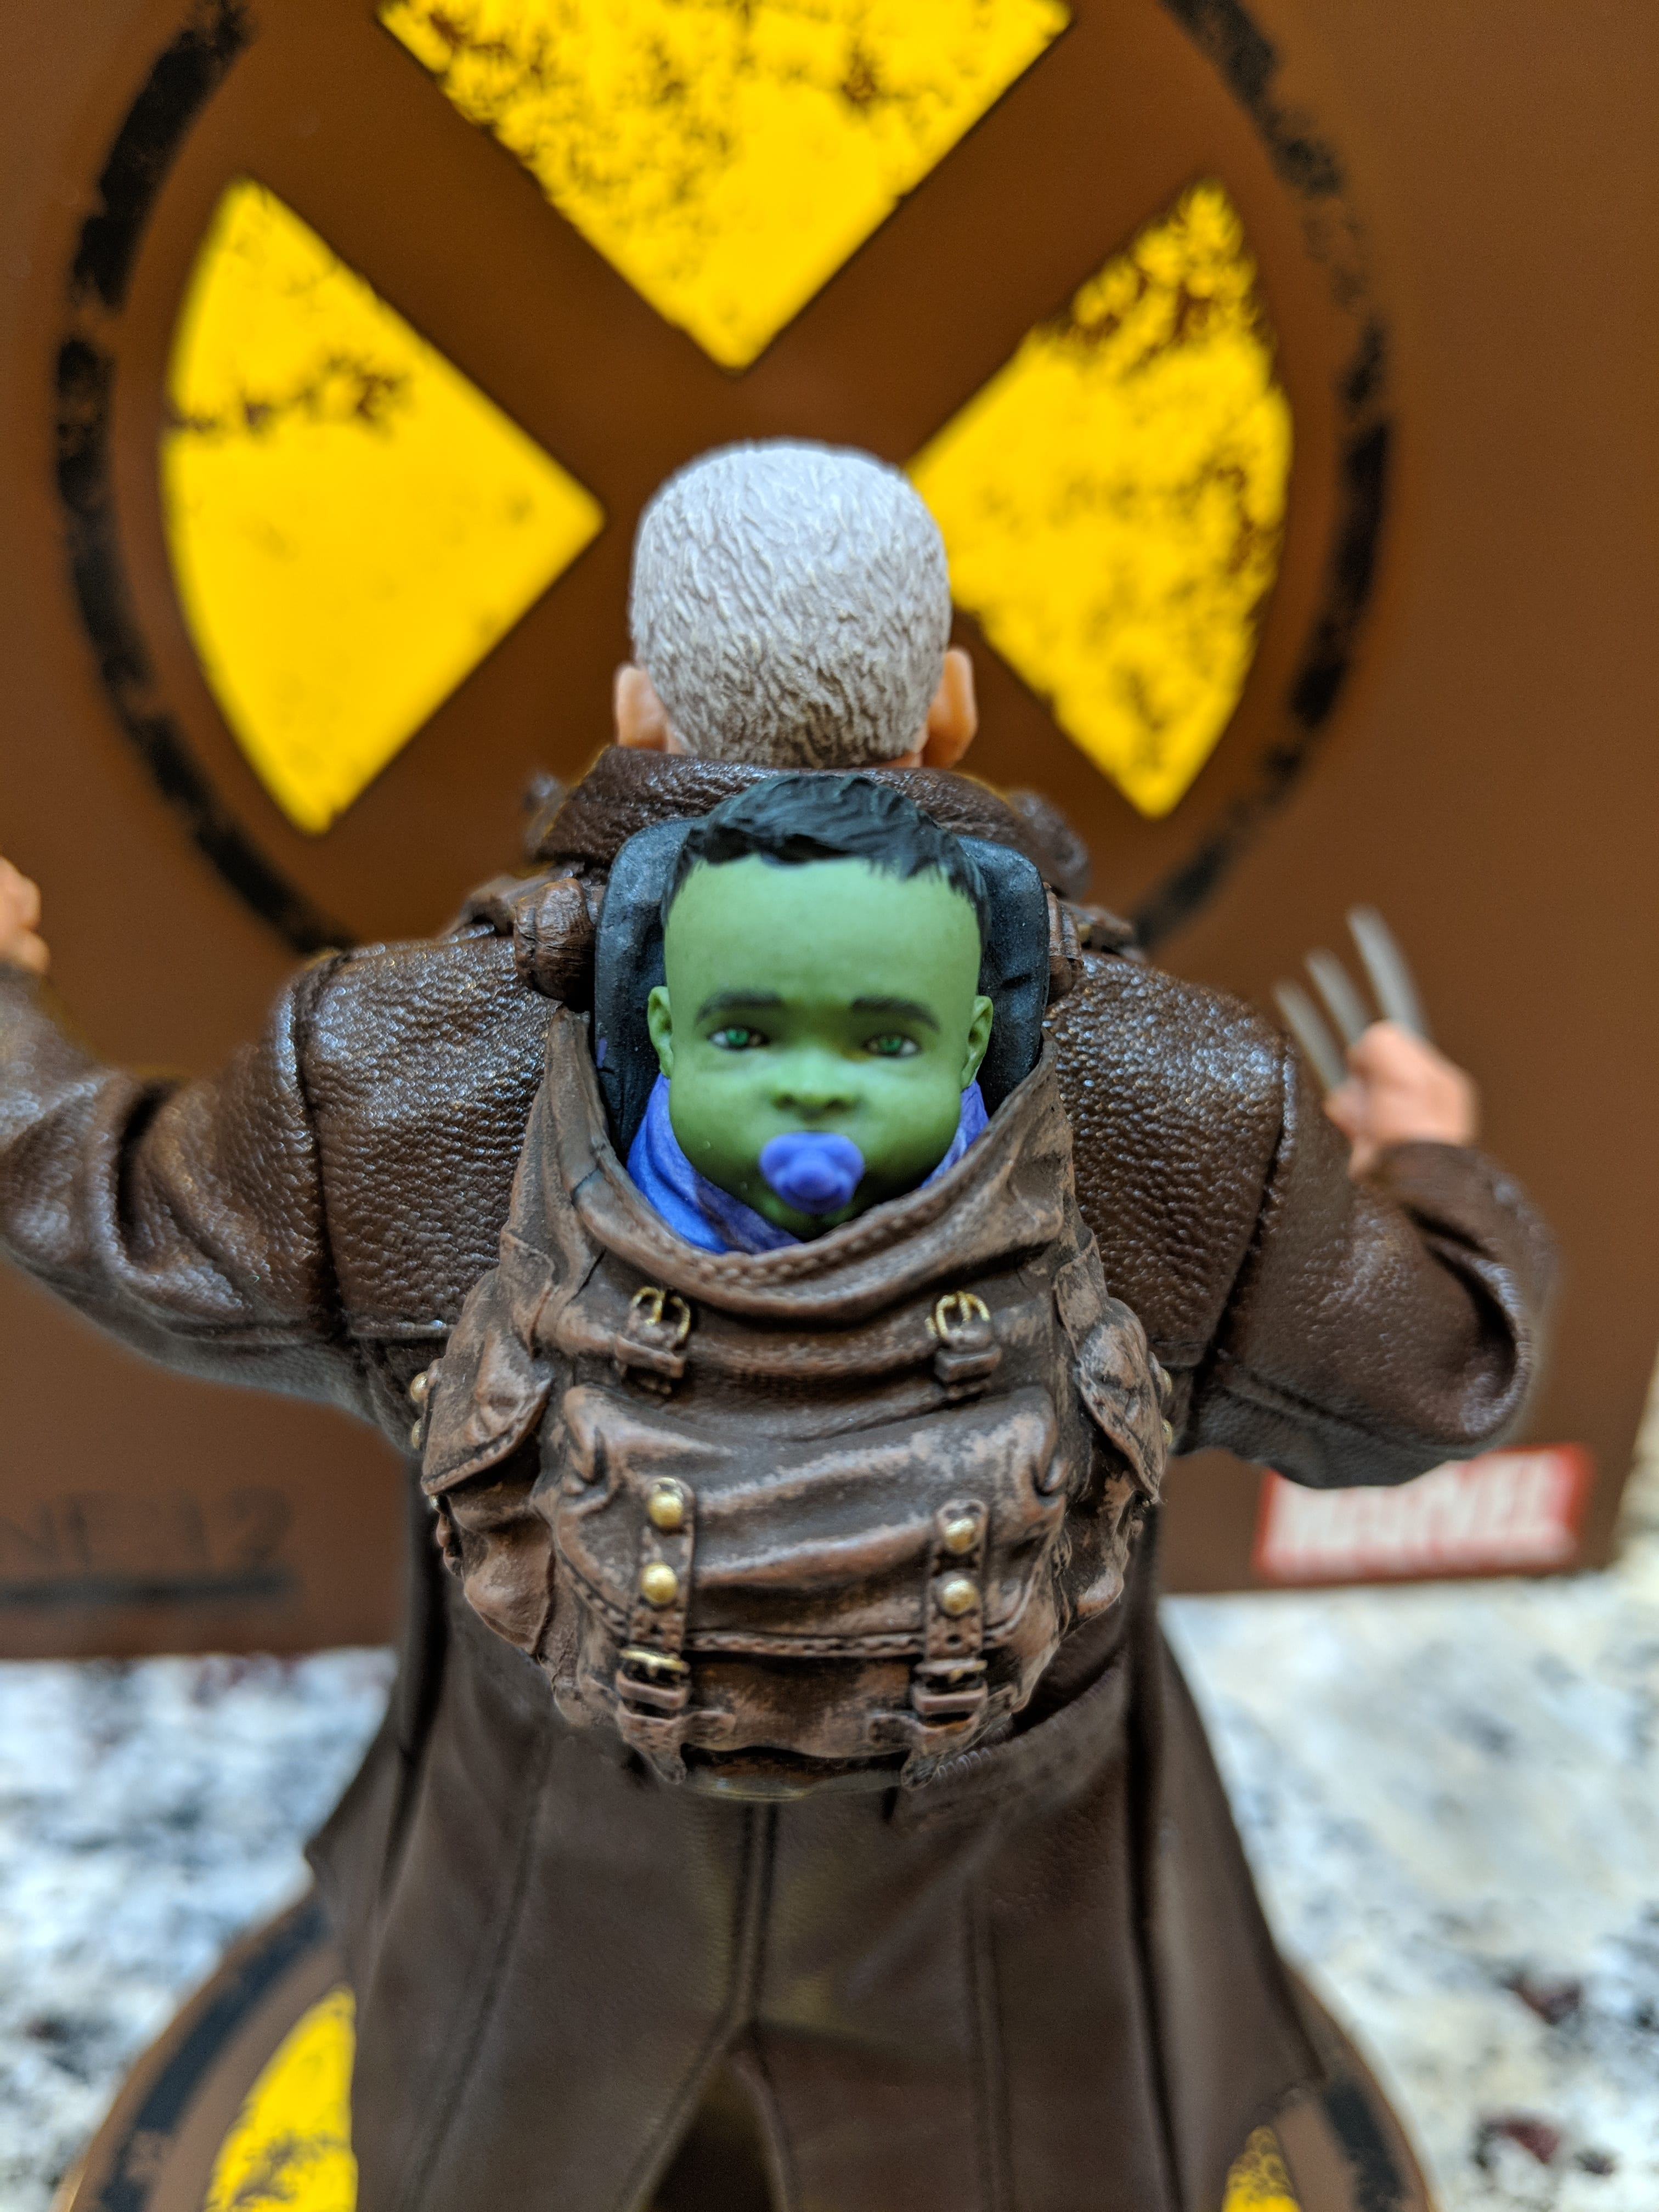 Unboxing/Review: Mezco One:12 Collective Old Man Logan Figure